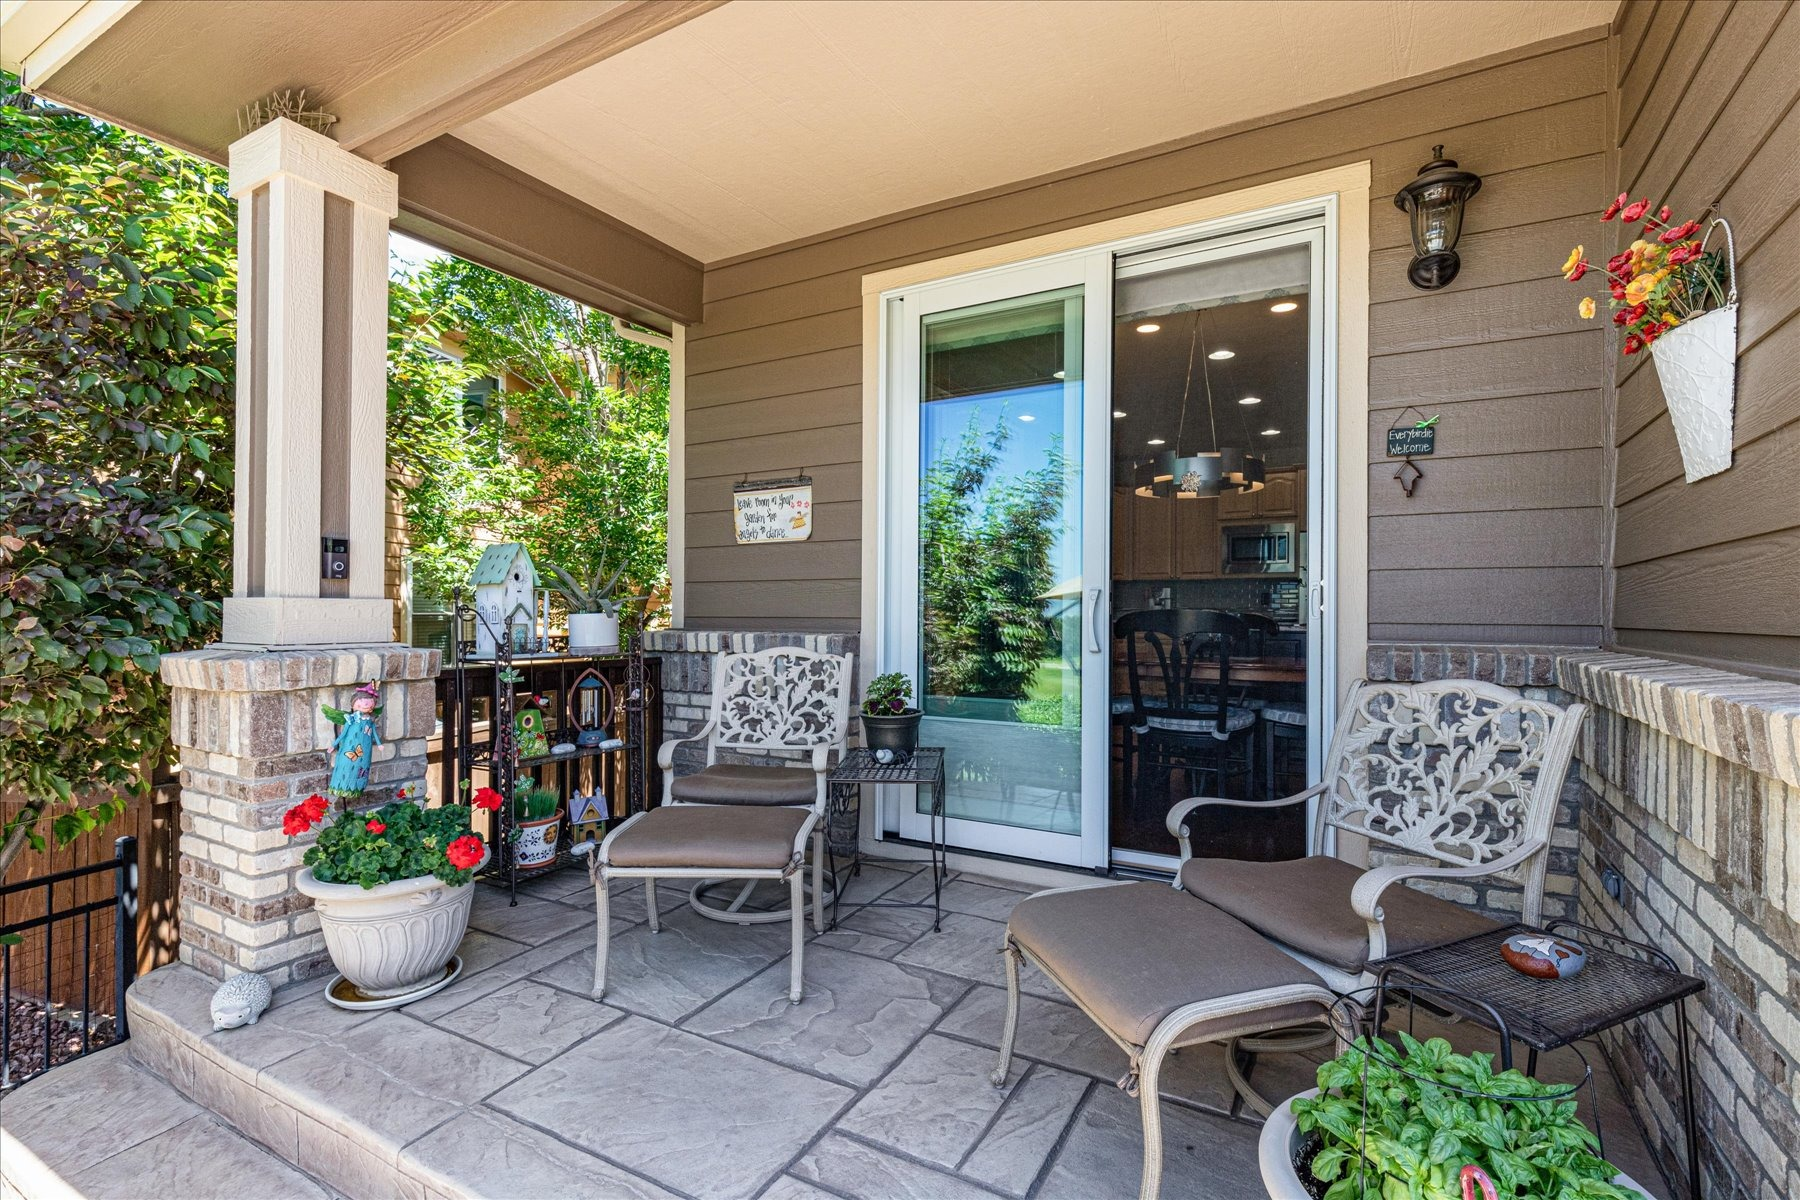 Covered Patio Area at Kitchen Door